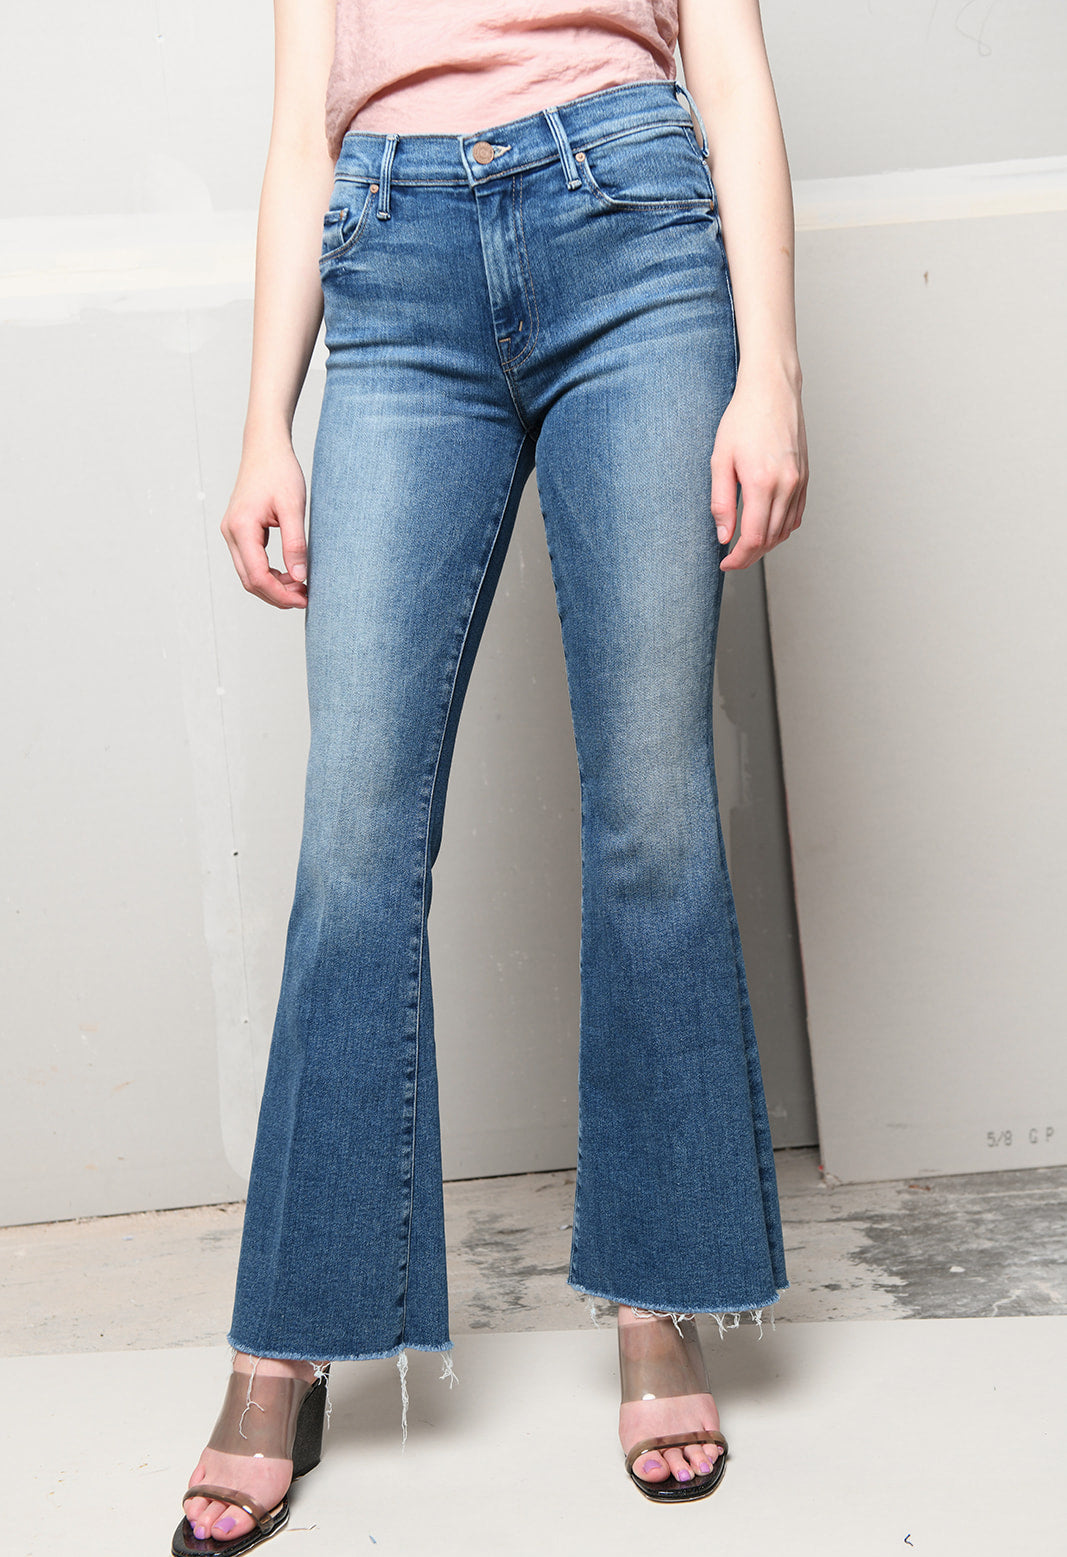 NWT Mother Denim The Weekender 27 Shoot To Thrill Size 26 28 $228